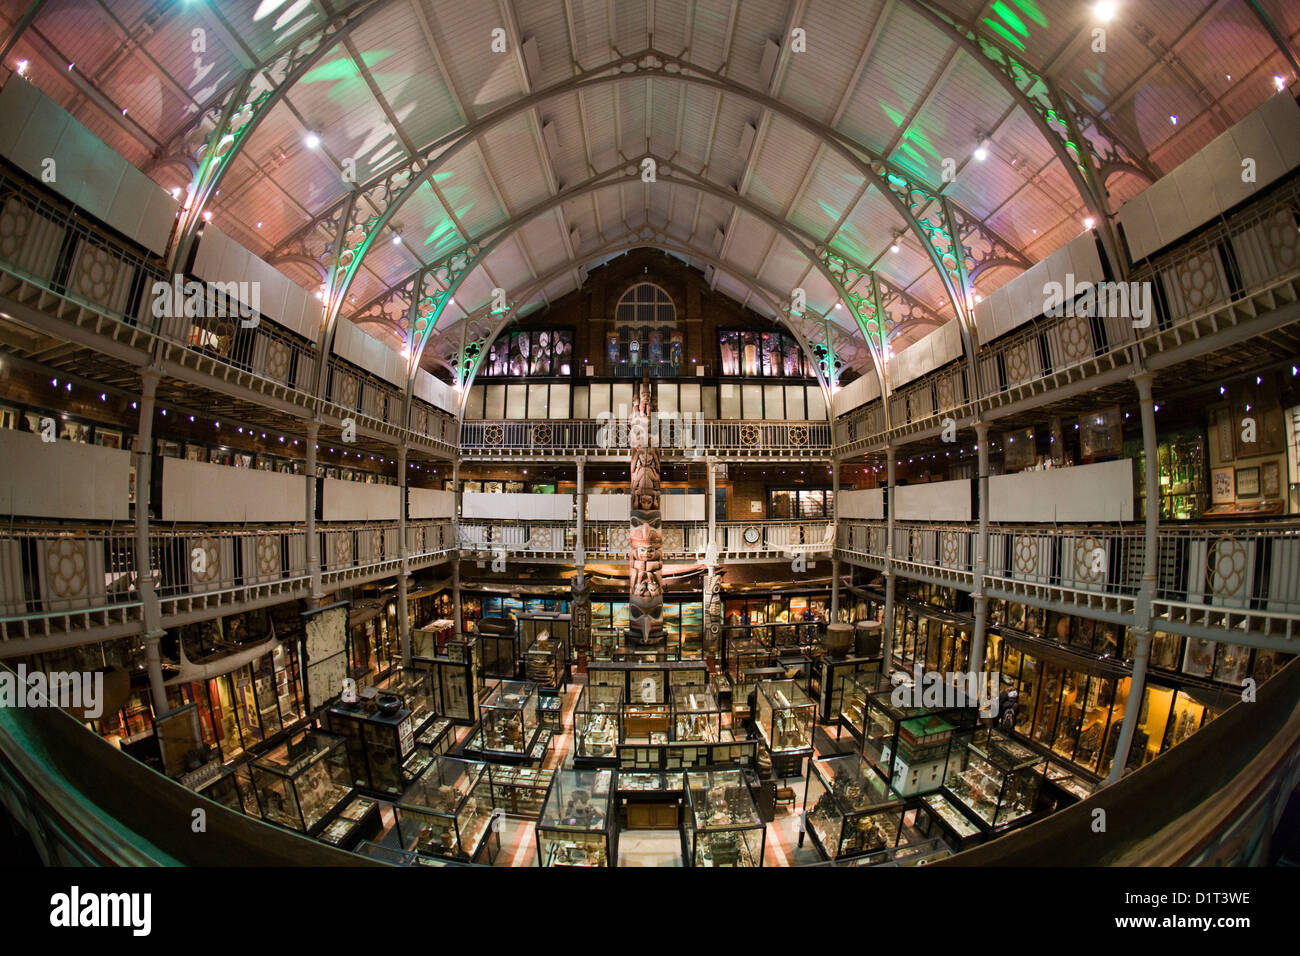 The Pitt Rivers Museum in Oxford, UK - Stock Image